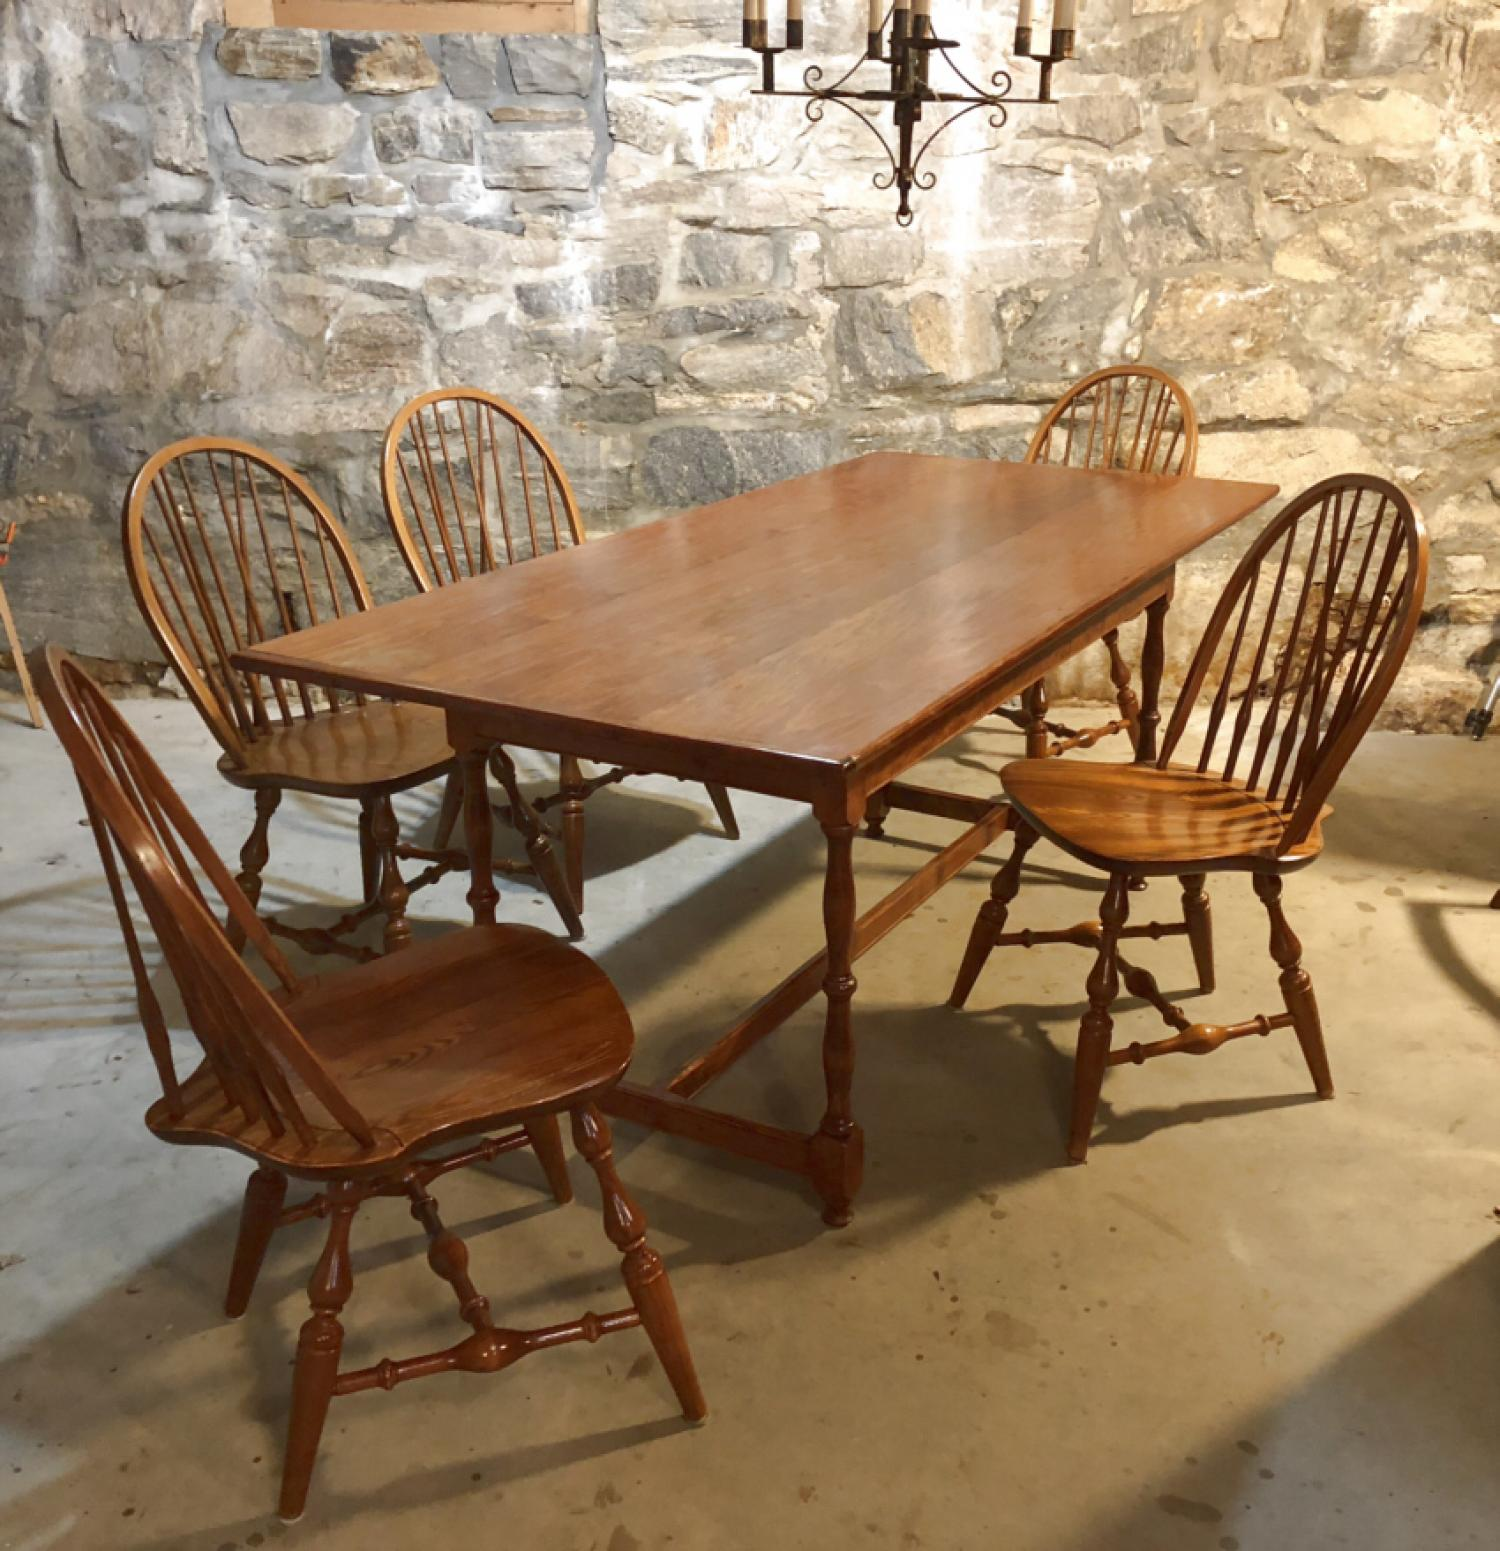 D R Dimes Salisbury harvest dining table